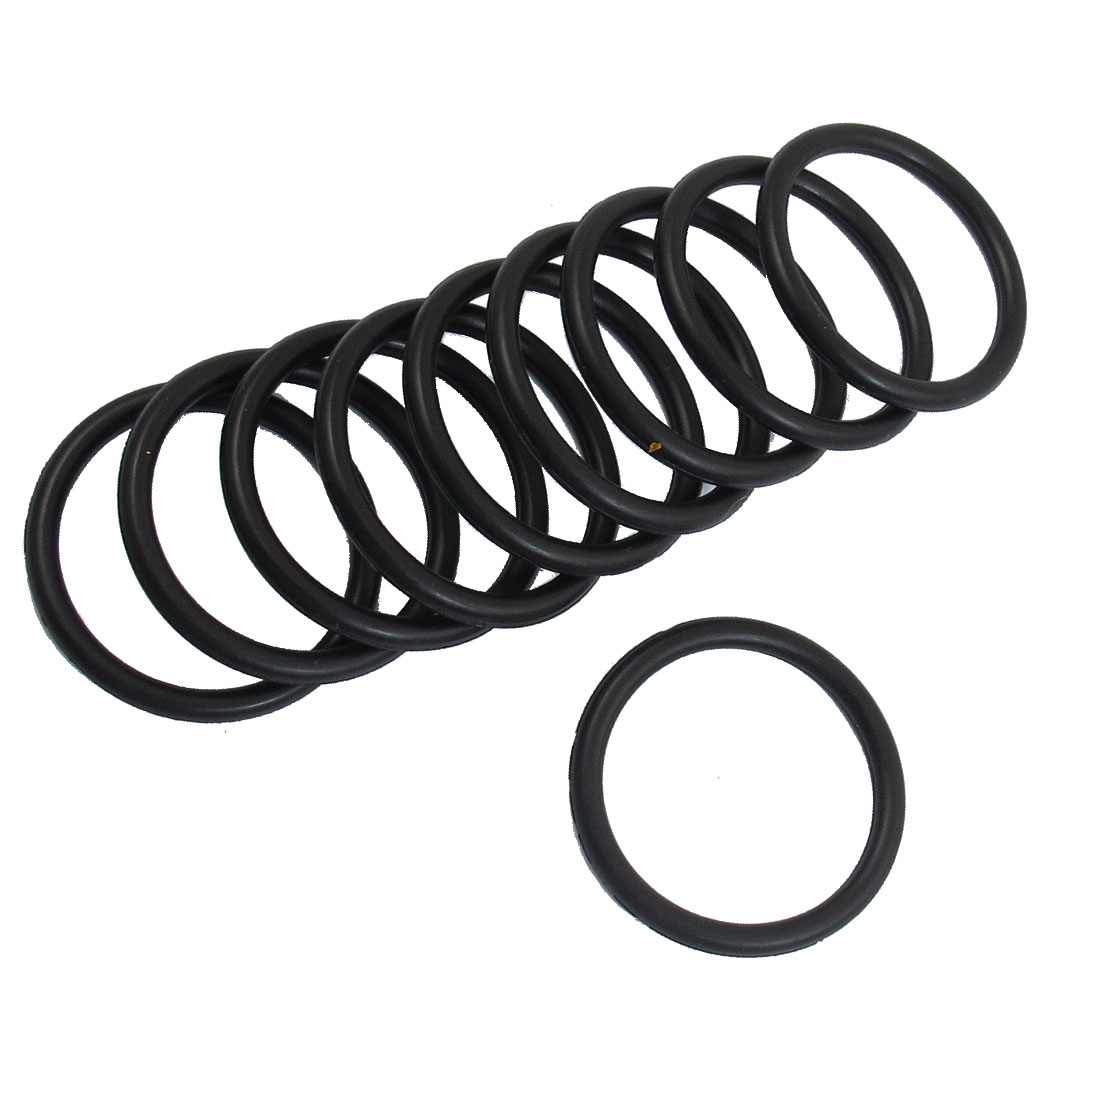 10 x 42mm Outside Dia 4mm Thick Black Rubber O Rings Gaskets